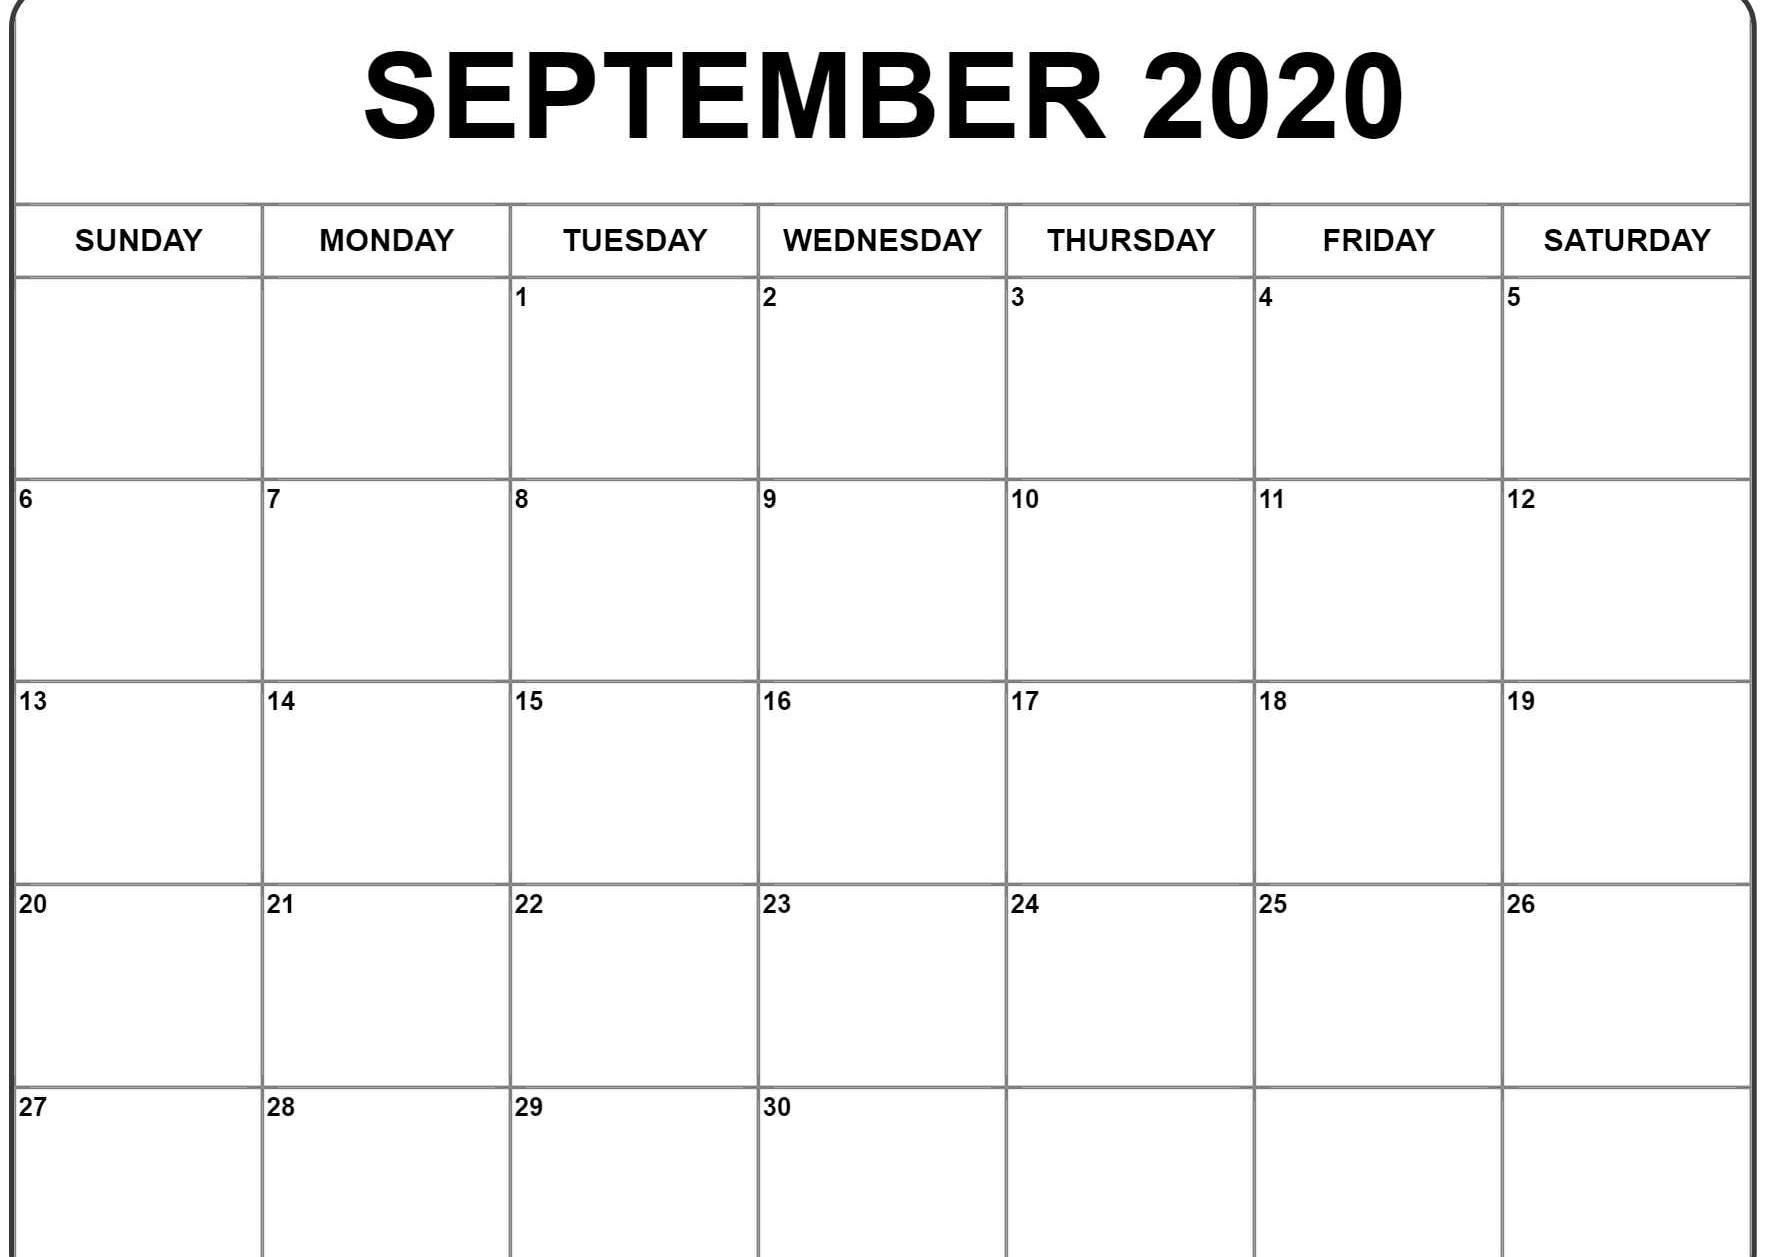 Awesome September 2020 Calendar Pdf, Word, Excel Template in November Calendar Excel 2020